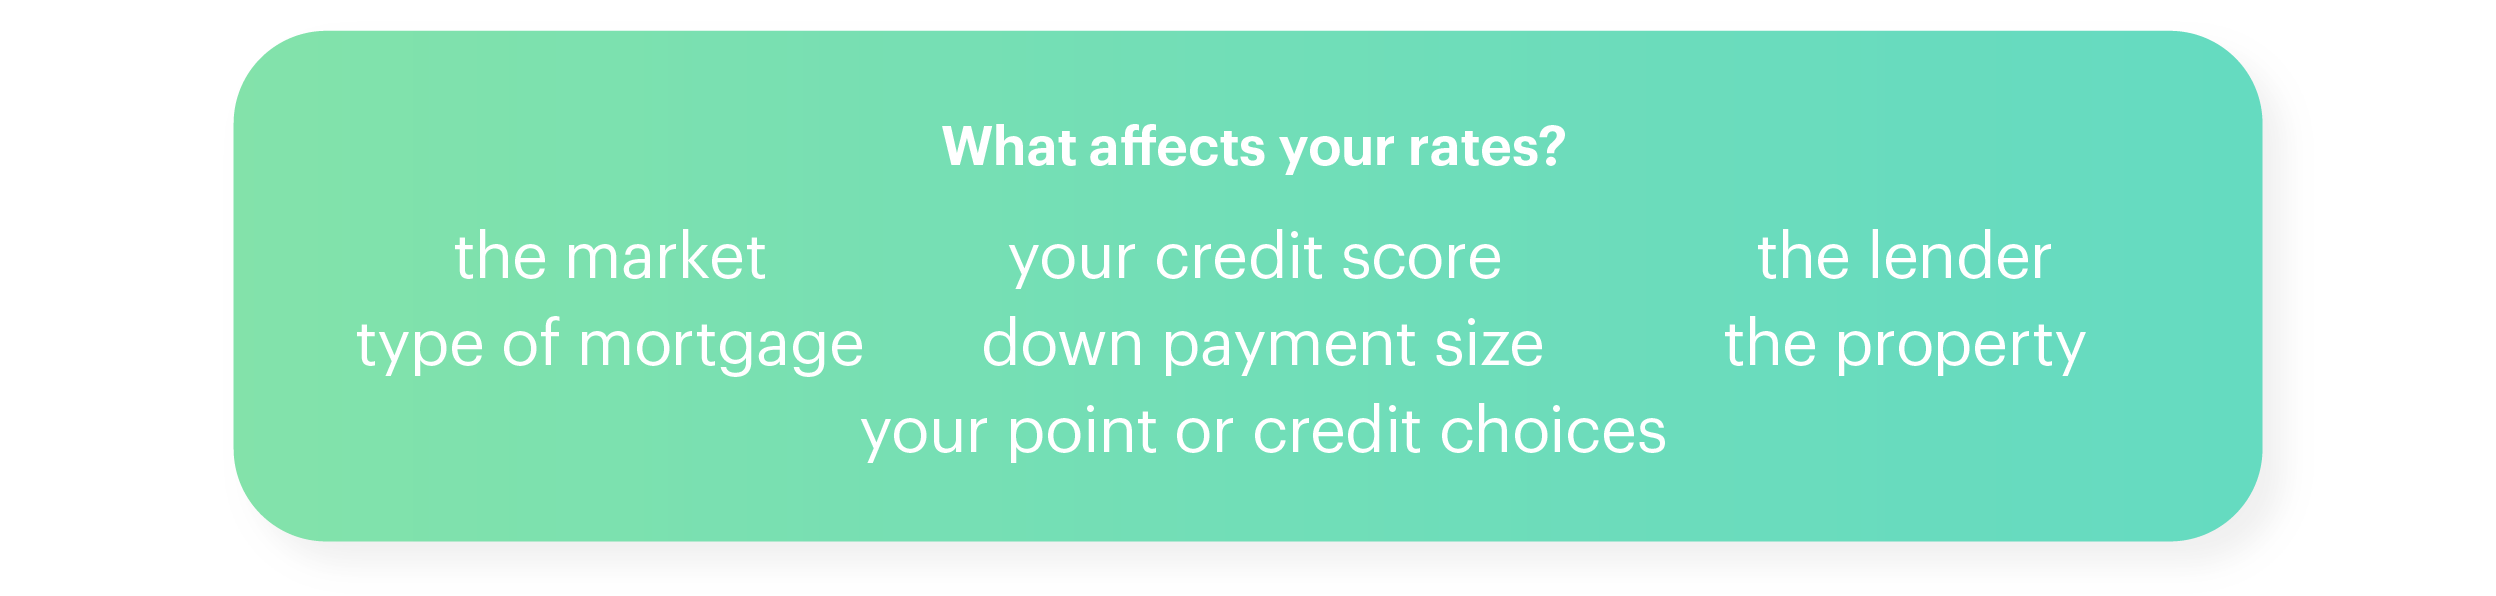 Green Diagram: What Affects Your Rates? The Market, Type of Mortgage, Your Credit Score, Down Payment Size, Your Point or Credit Choices...